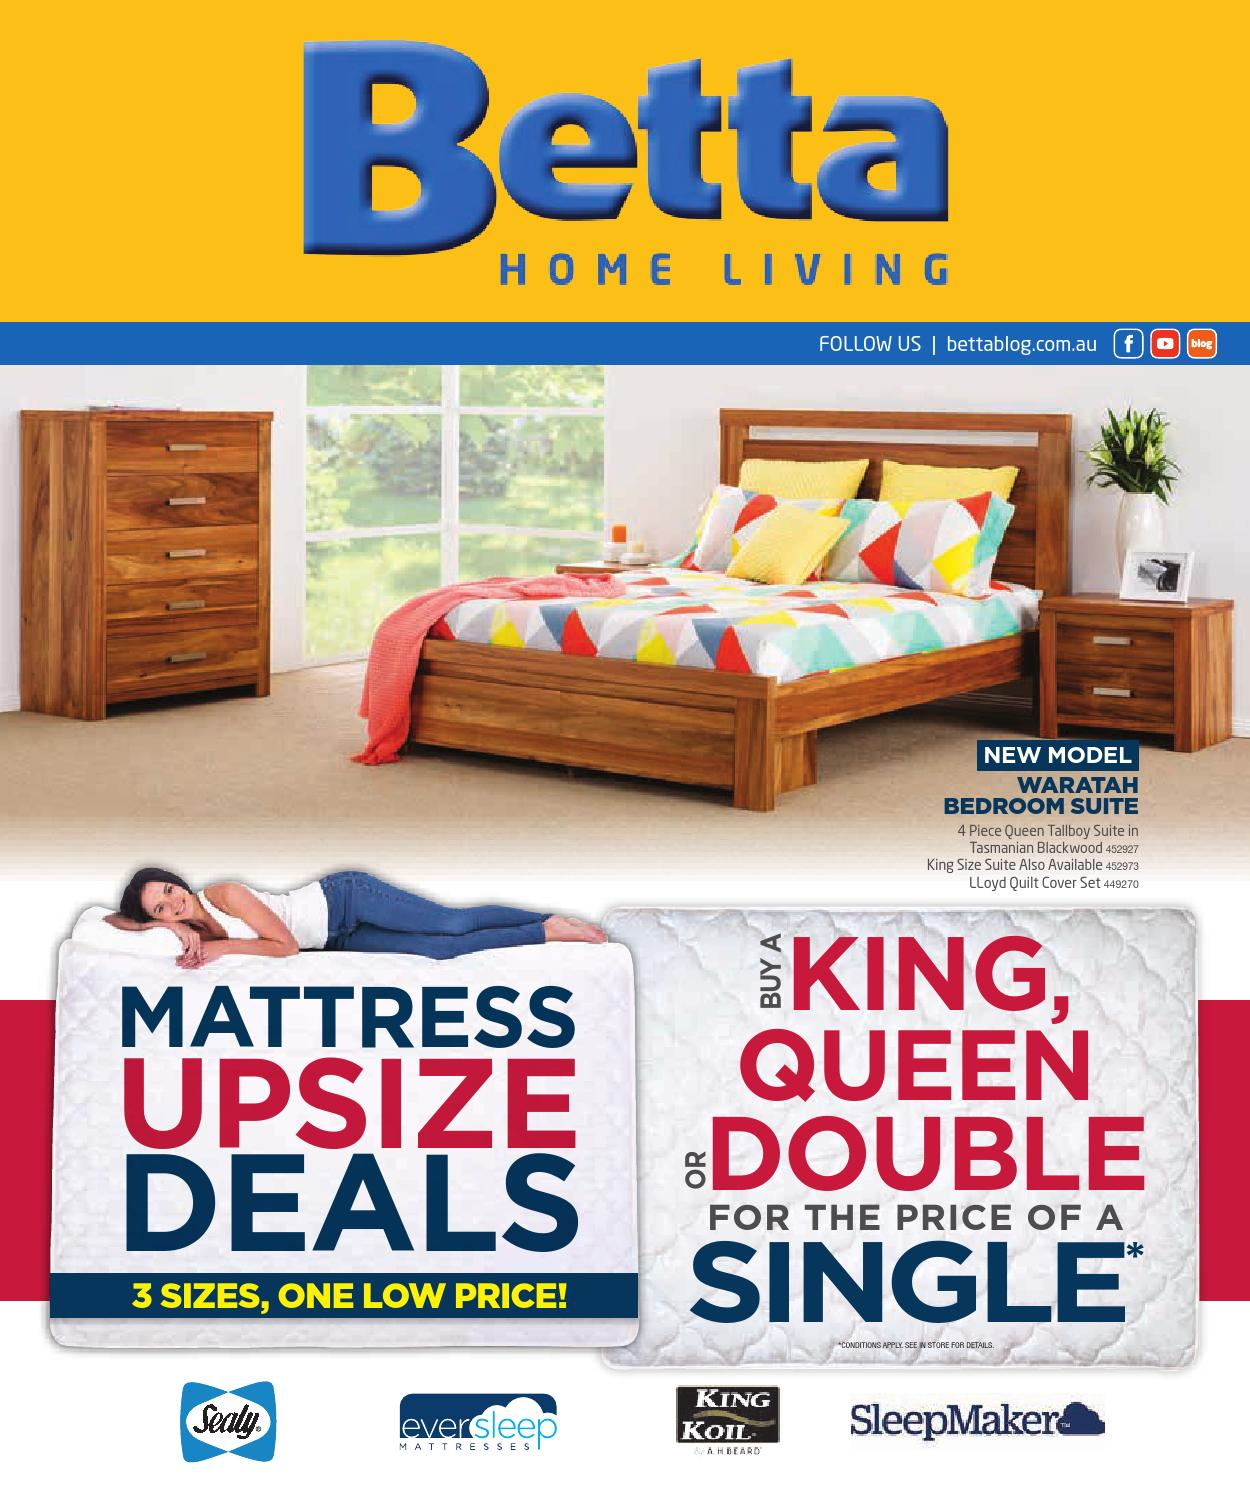 Betta October Furniture Catalogue By Betta Home Living Issuu